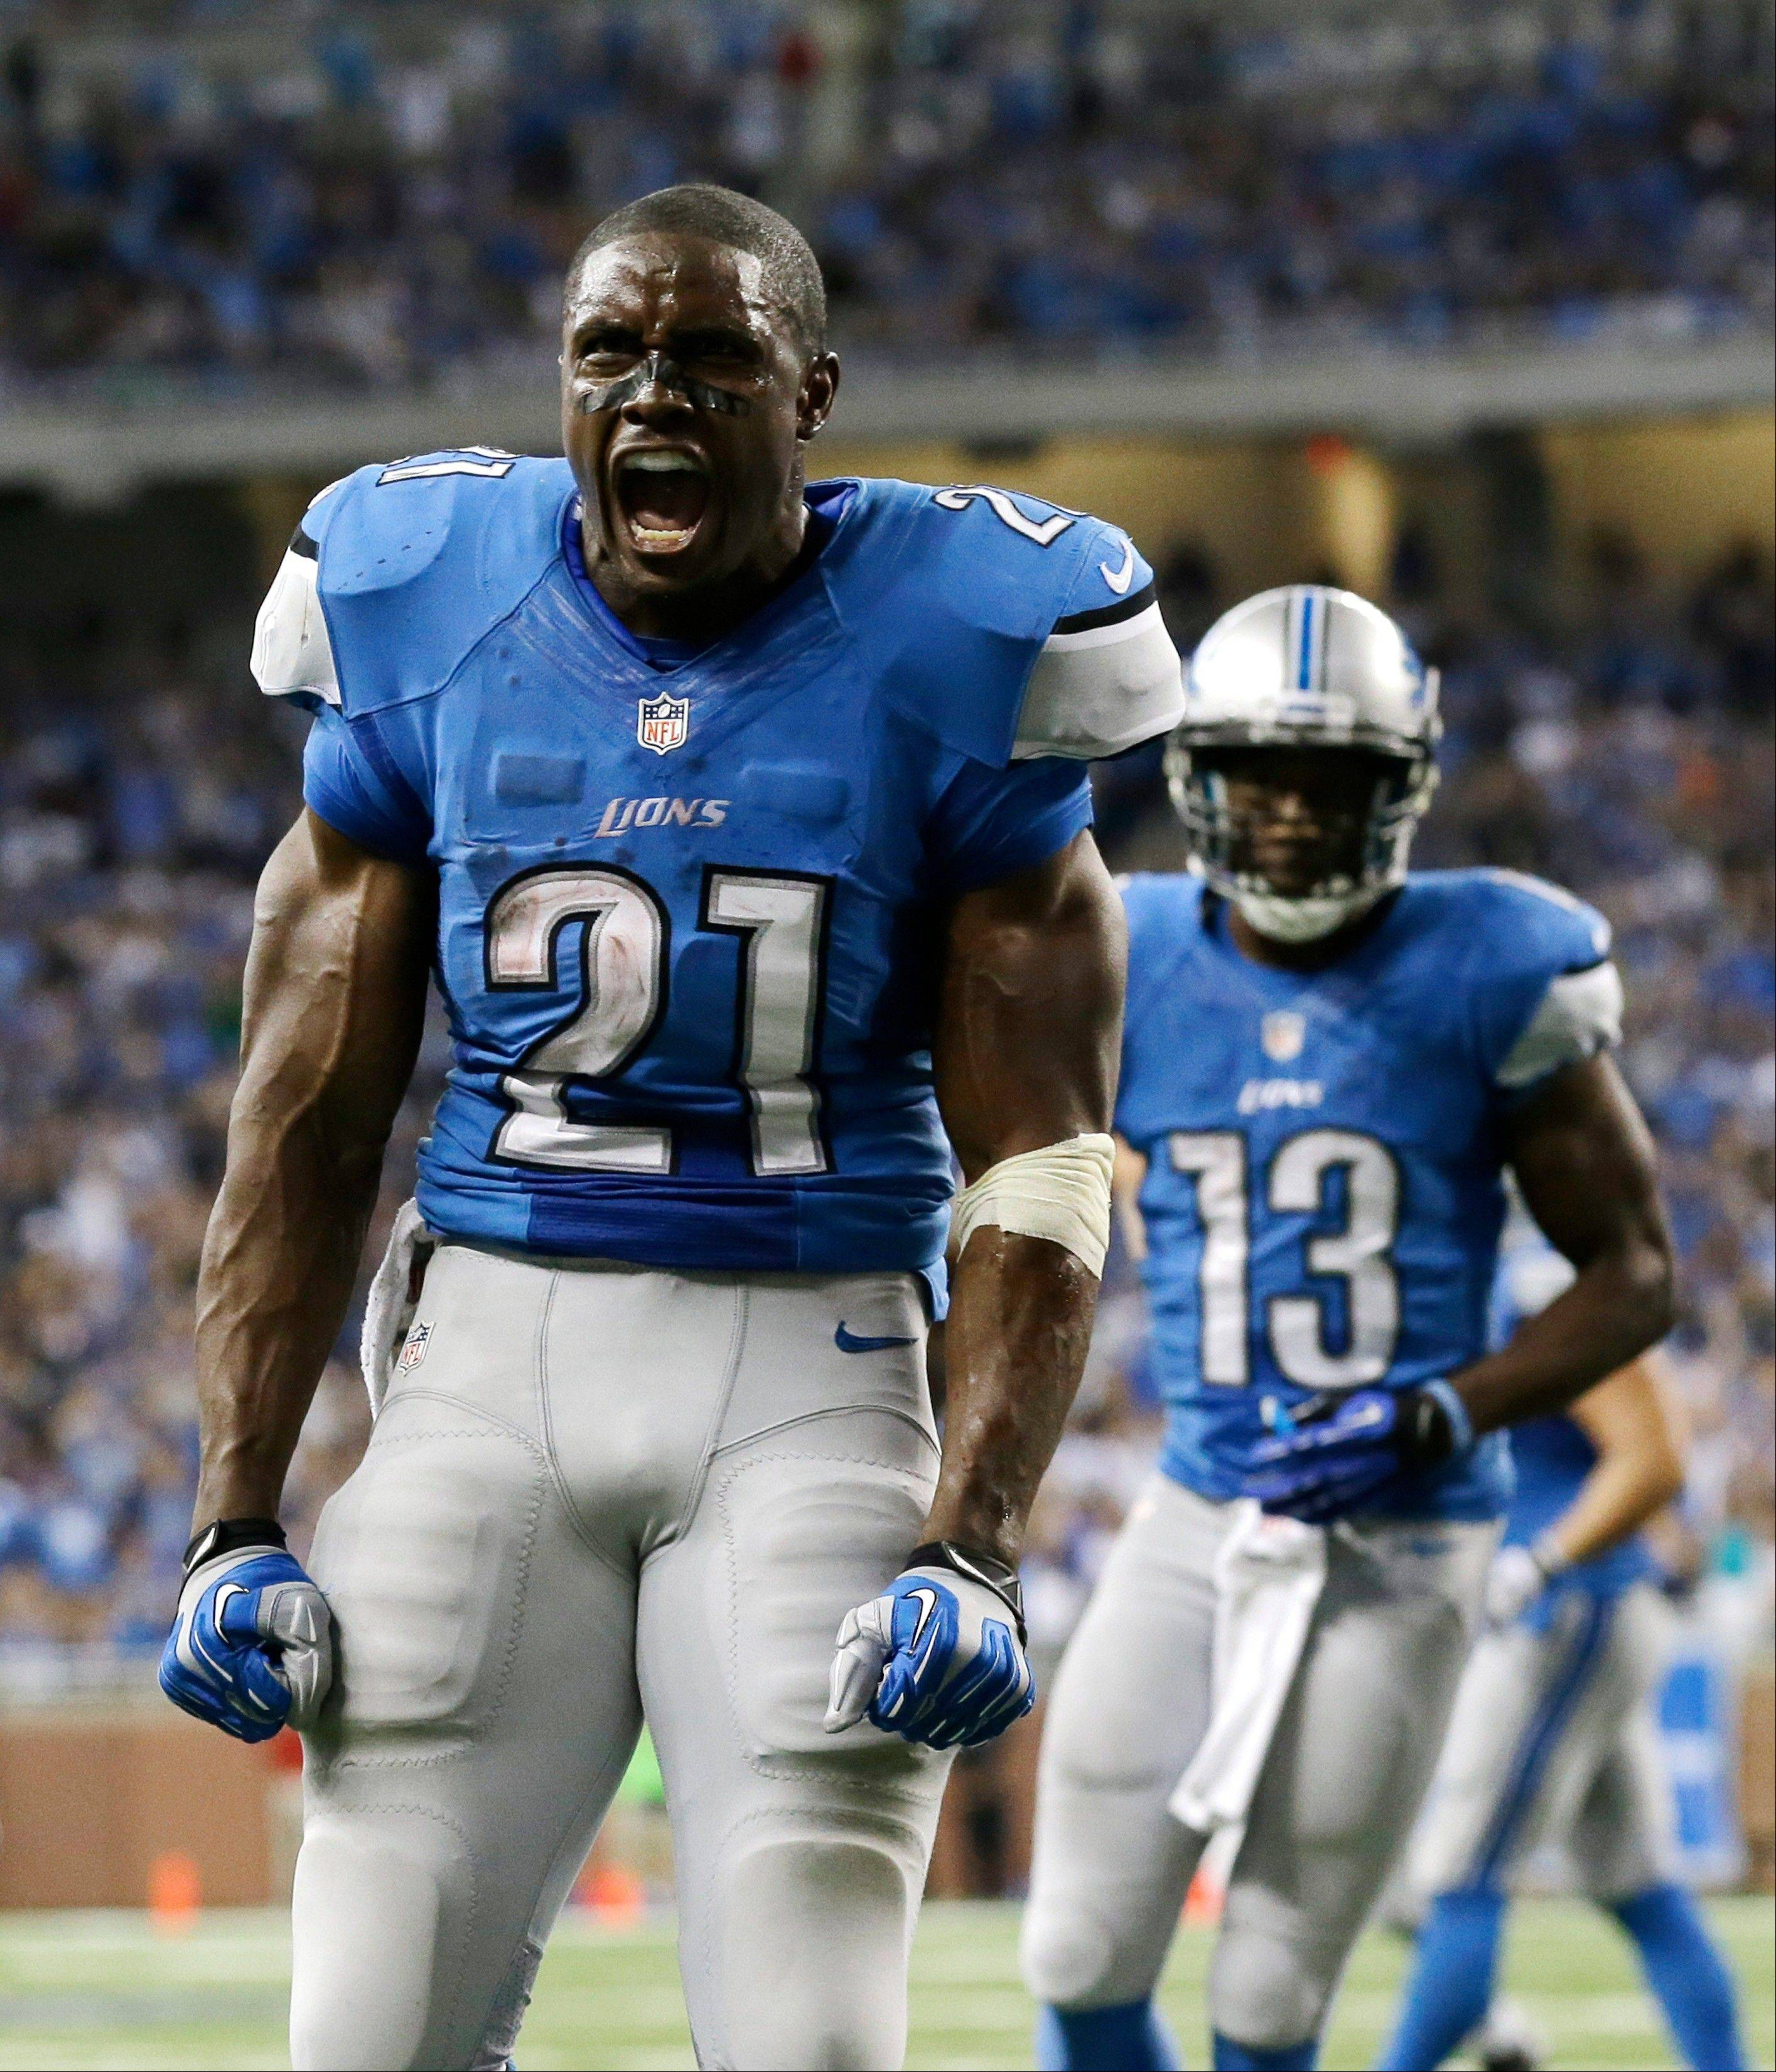 Reggie Bush reacts after scoring during the fourth quarter of Detroit's victory over Minnesota earlier this season.